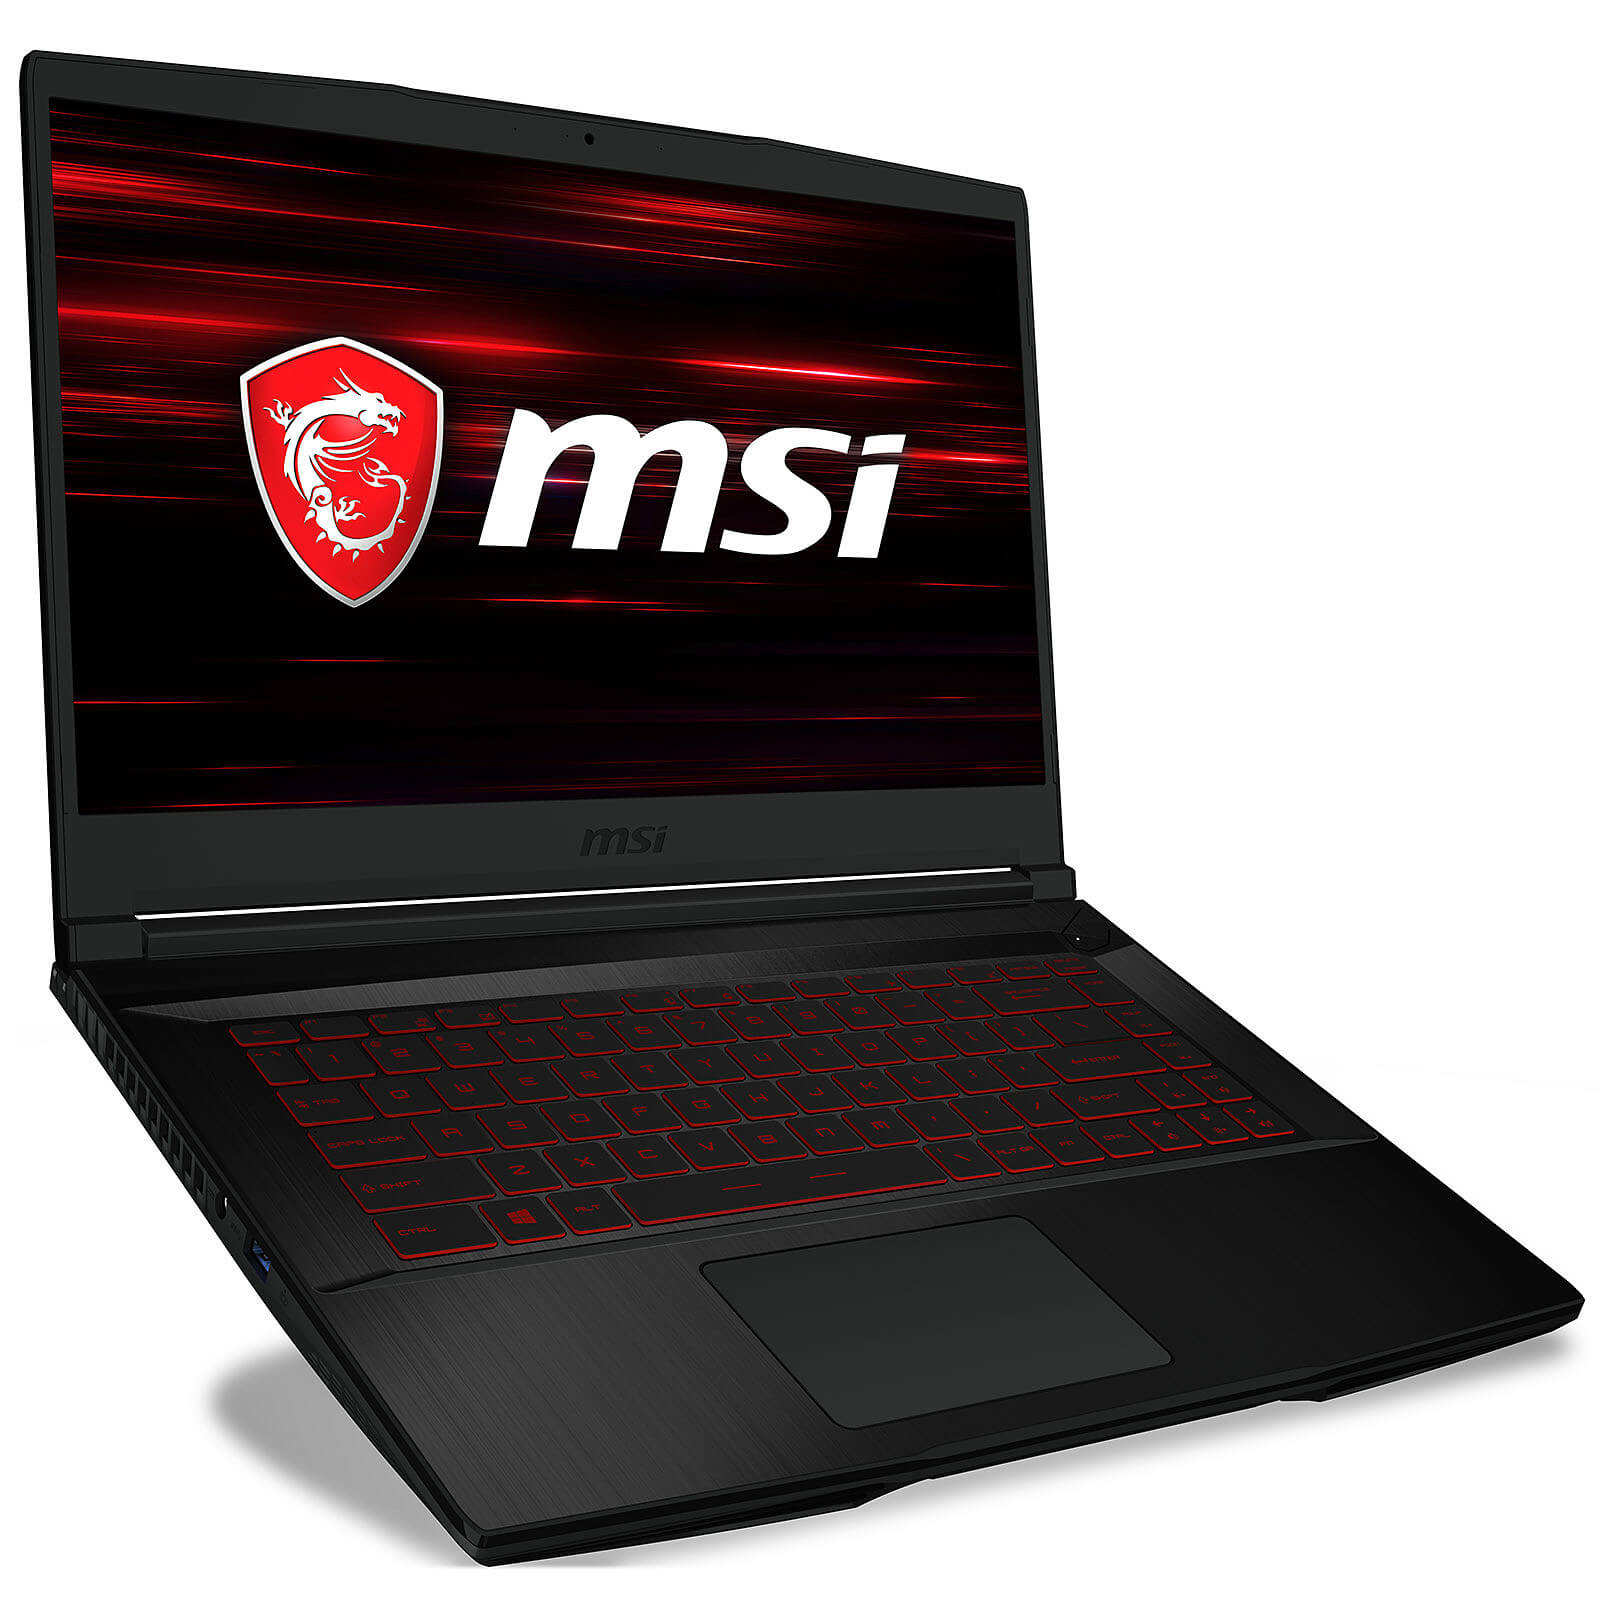 "MSI GF63 Thin 9RCX, 15.6"", 512GB SSD, 16G RAM, Intel Core i5-9300H, Windows 10"